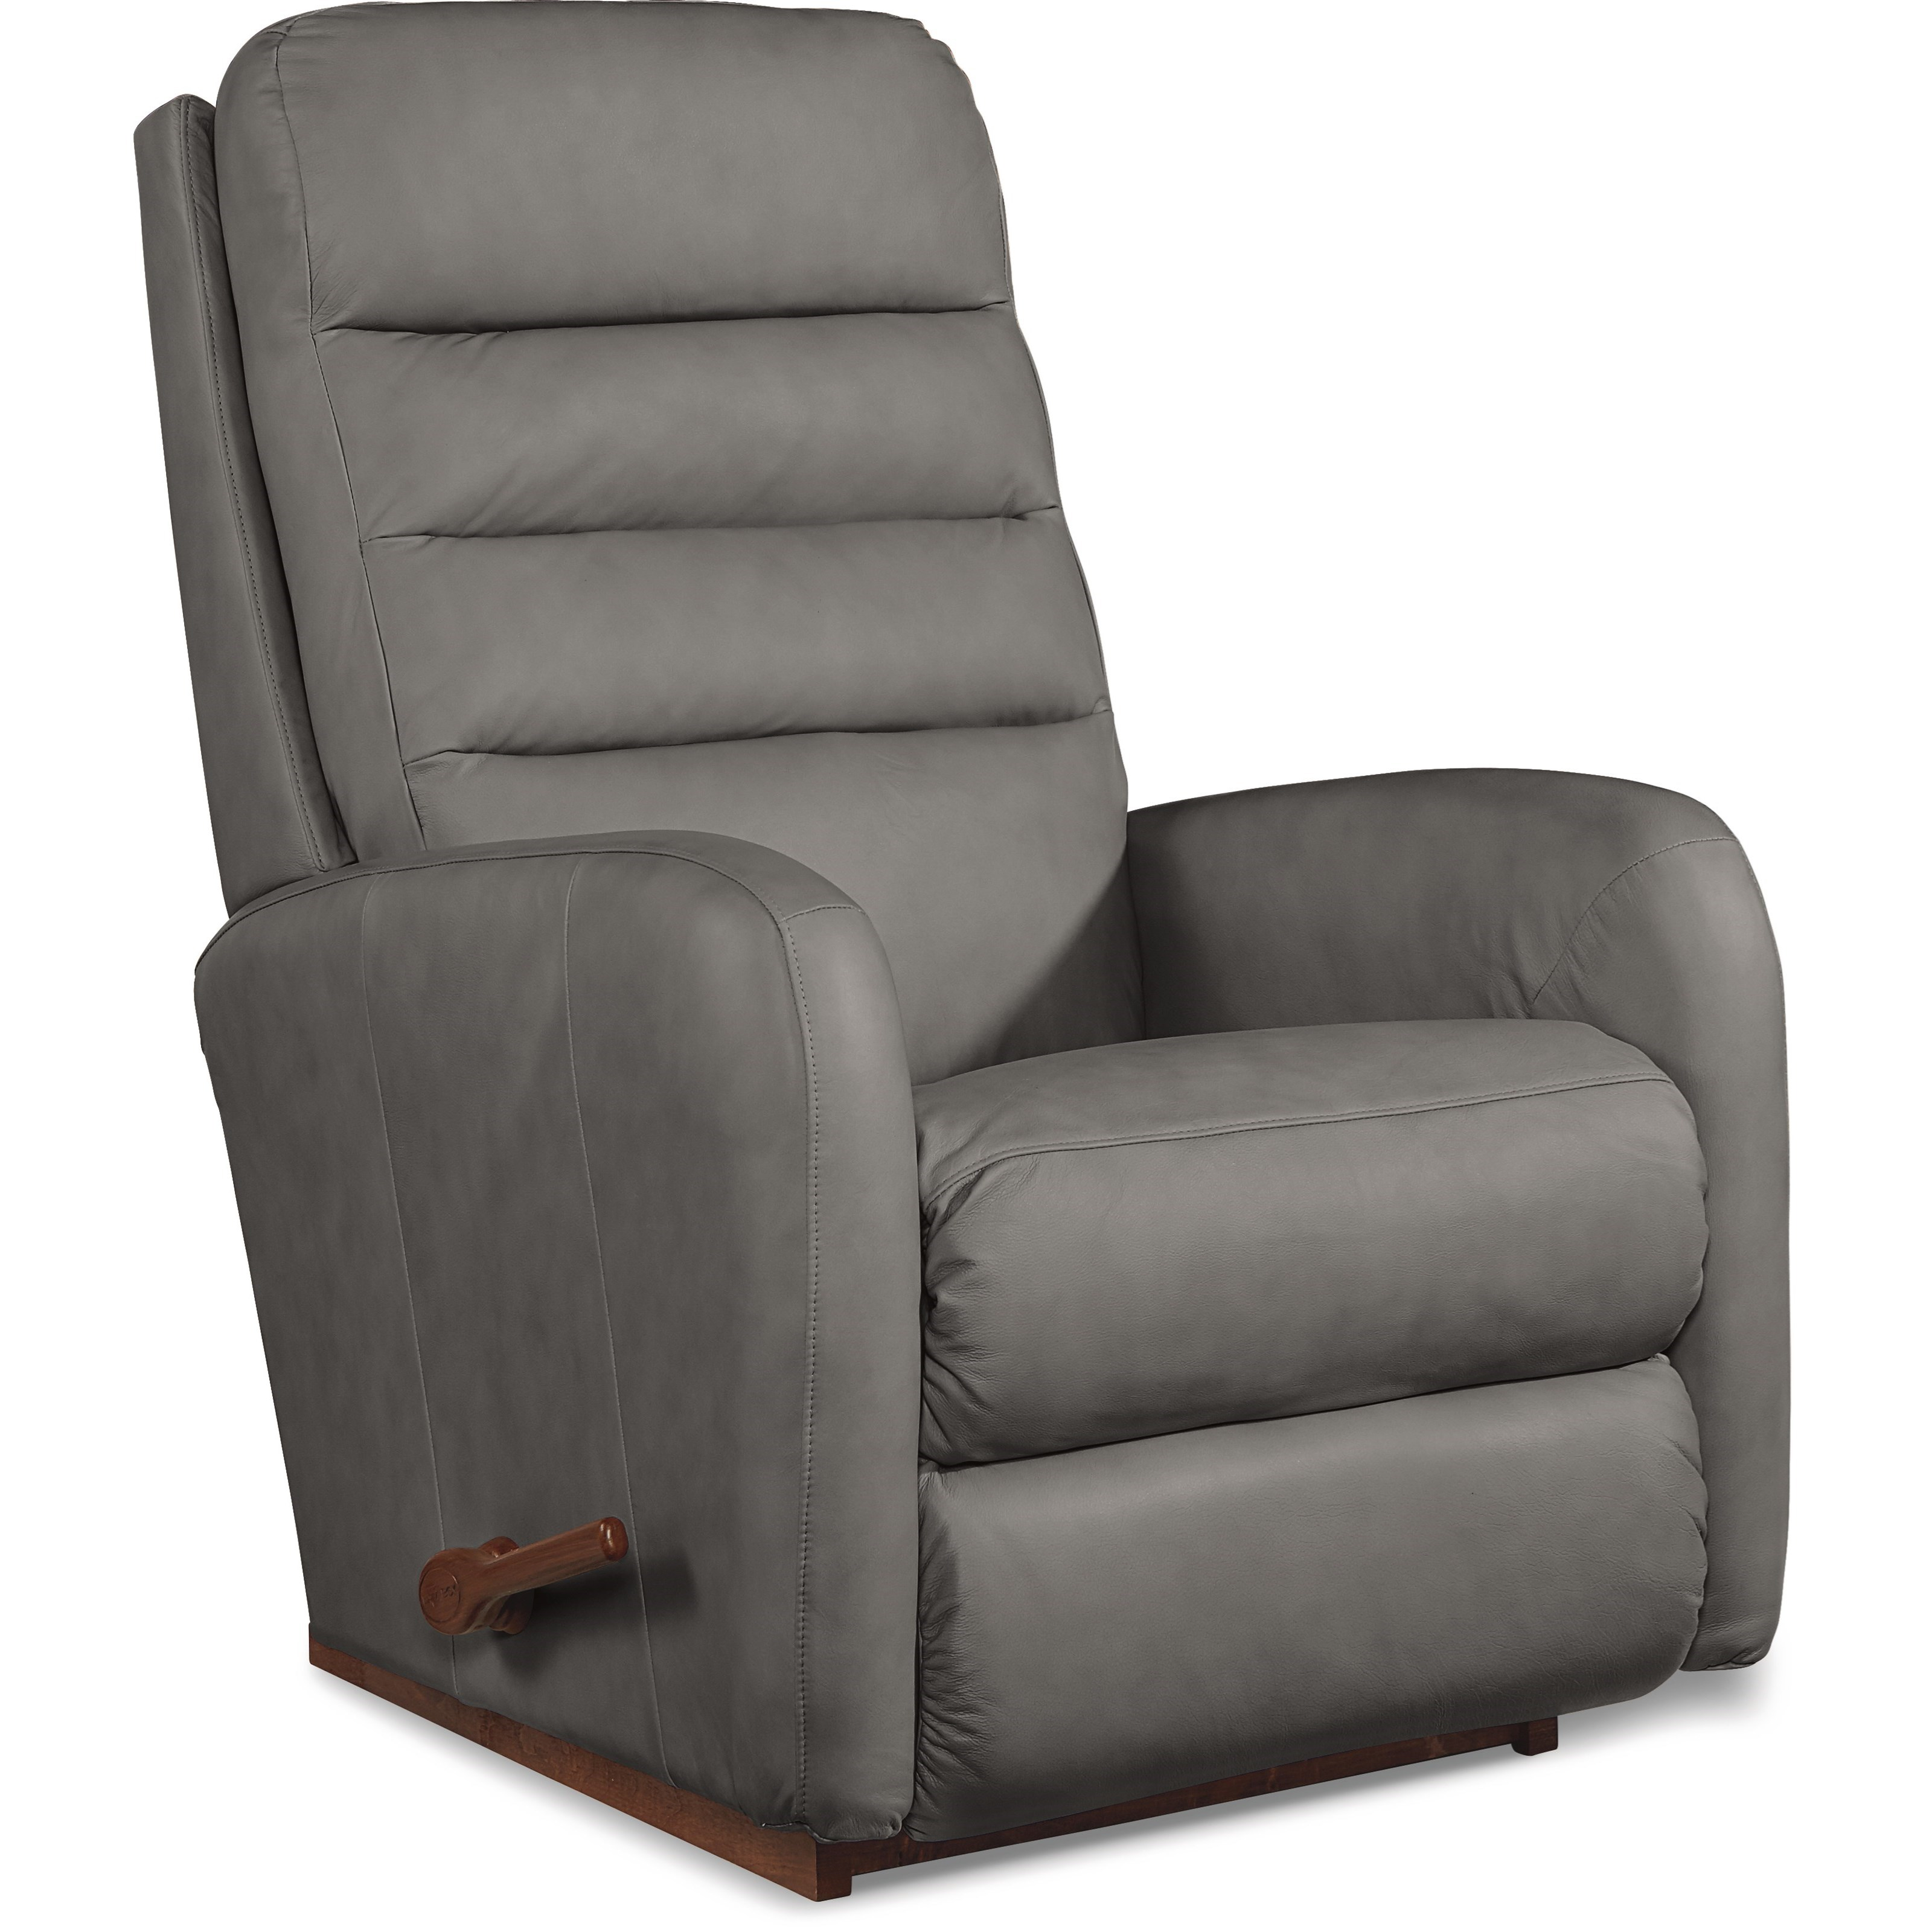 Forum Wall Recliner by La-Z-Boy at Reid's Furniture